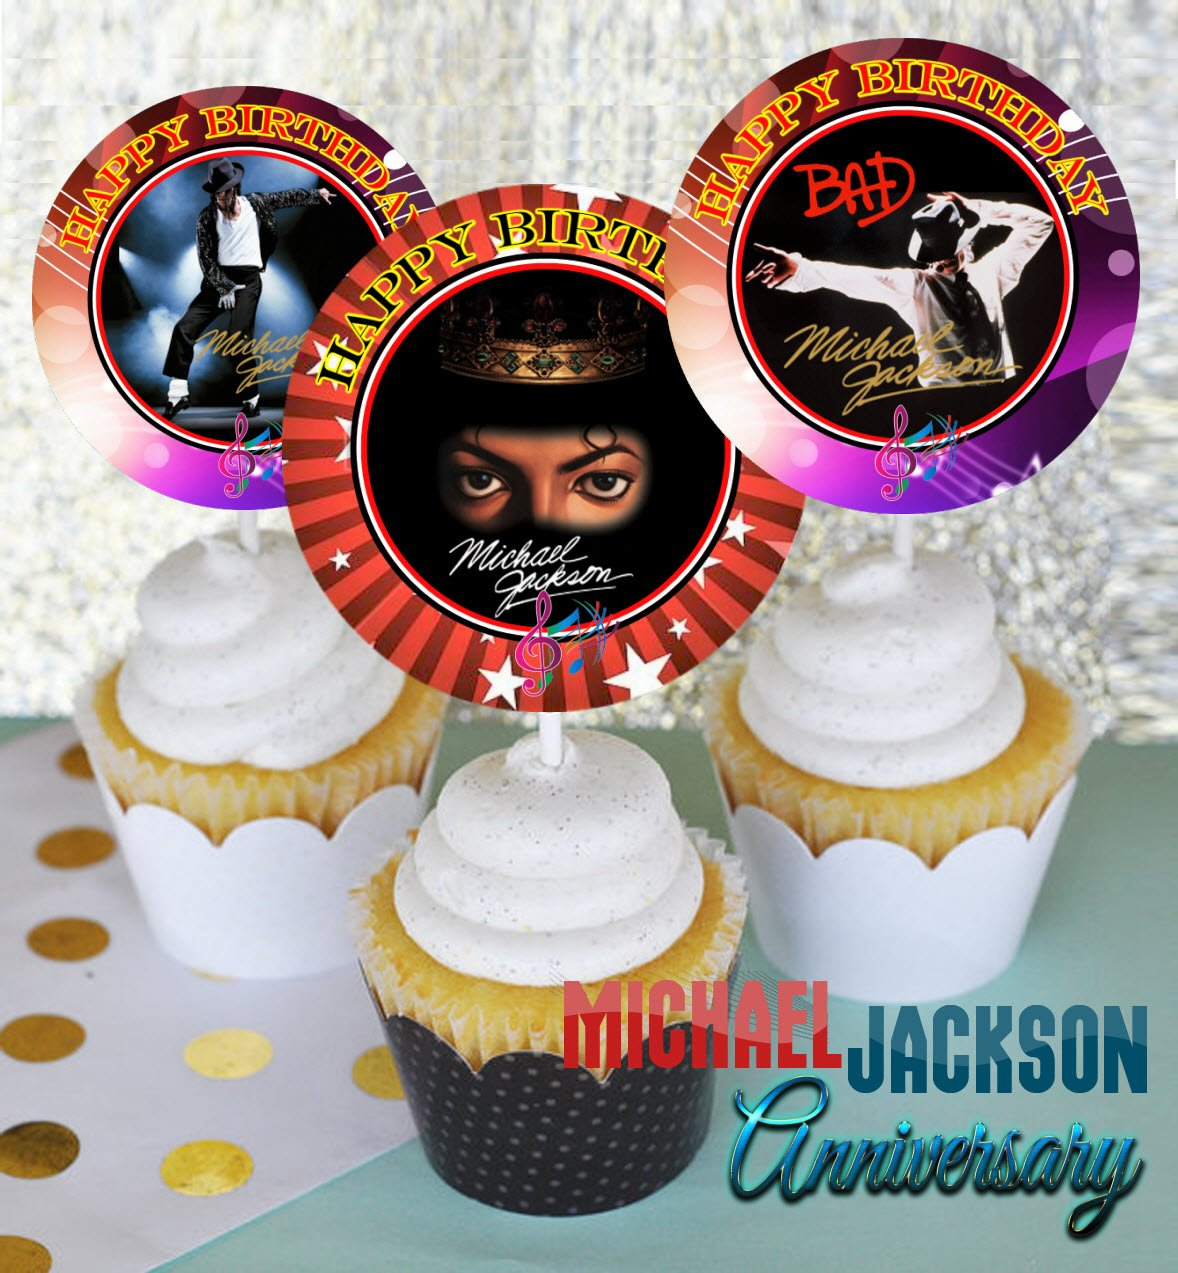 12 MICHAEL JACKSON ANNIVERSARY Birthday Inspired Party Picks, Cupcake Picks, Cupcake Toppers #1 by Crafting Mania LLC.